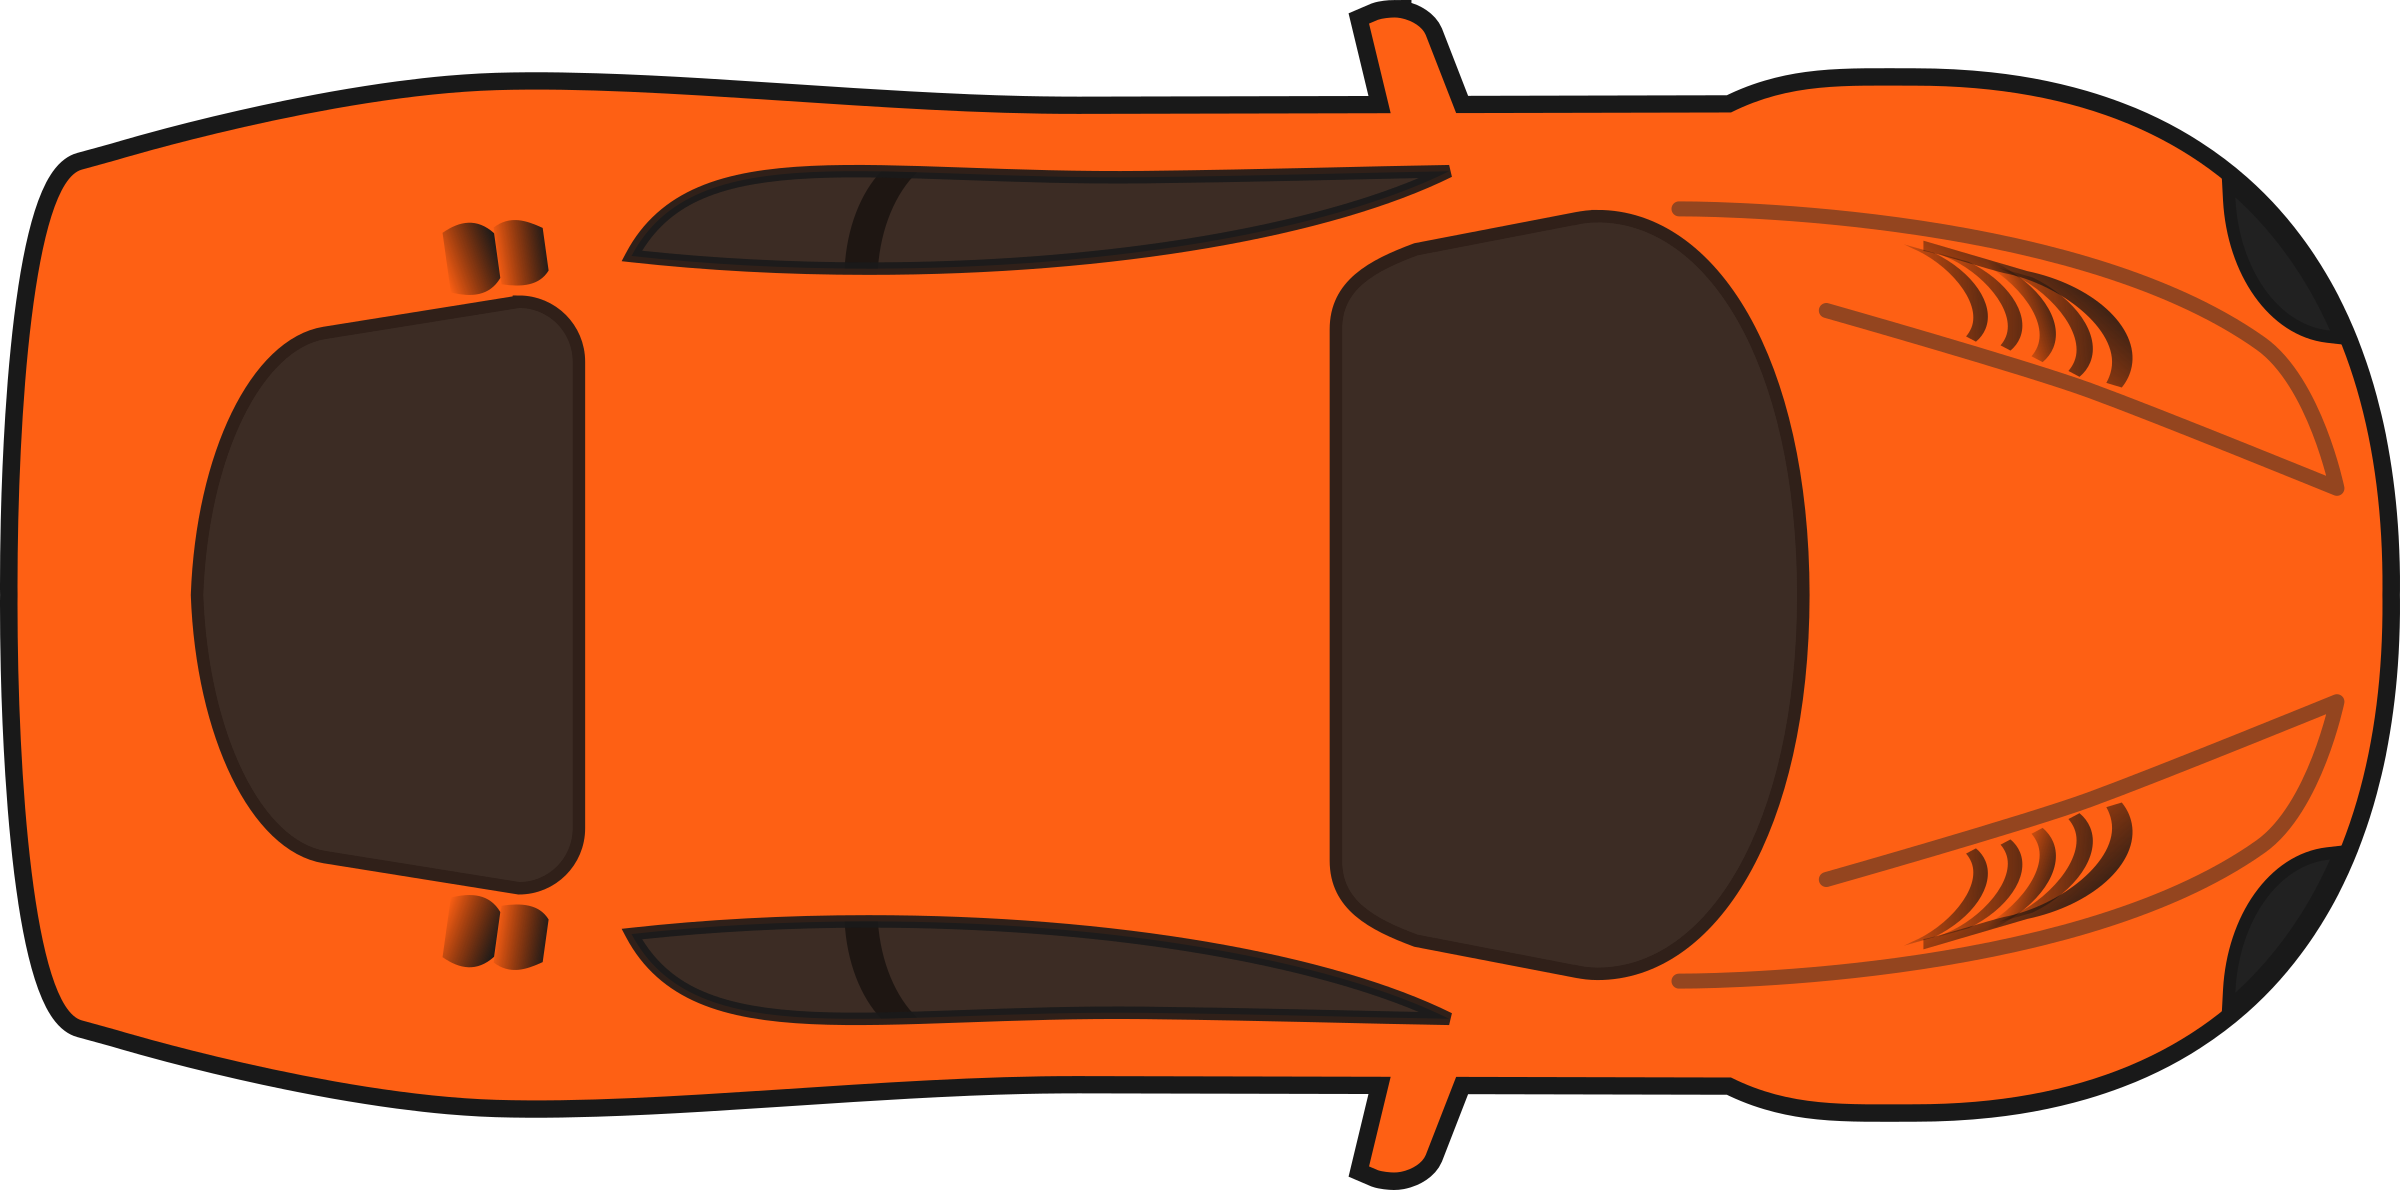 Orange Racing Car  Top View  by qubodupTruck Top View Png